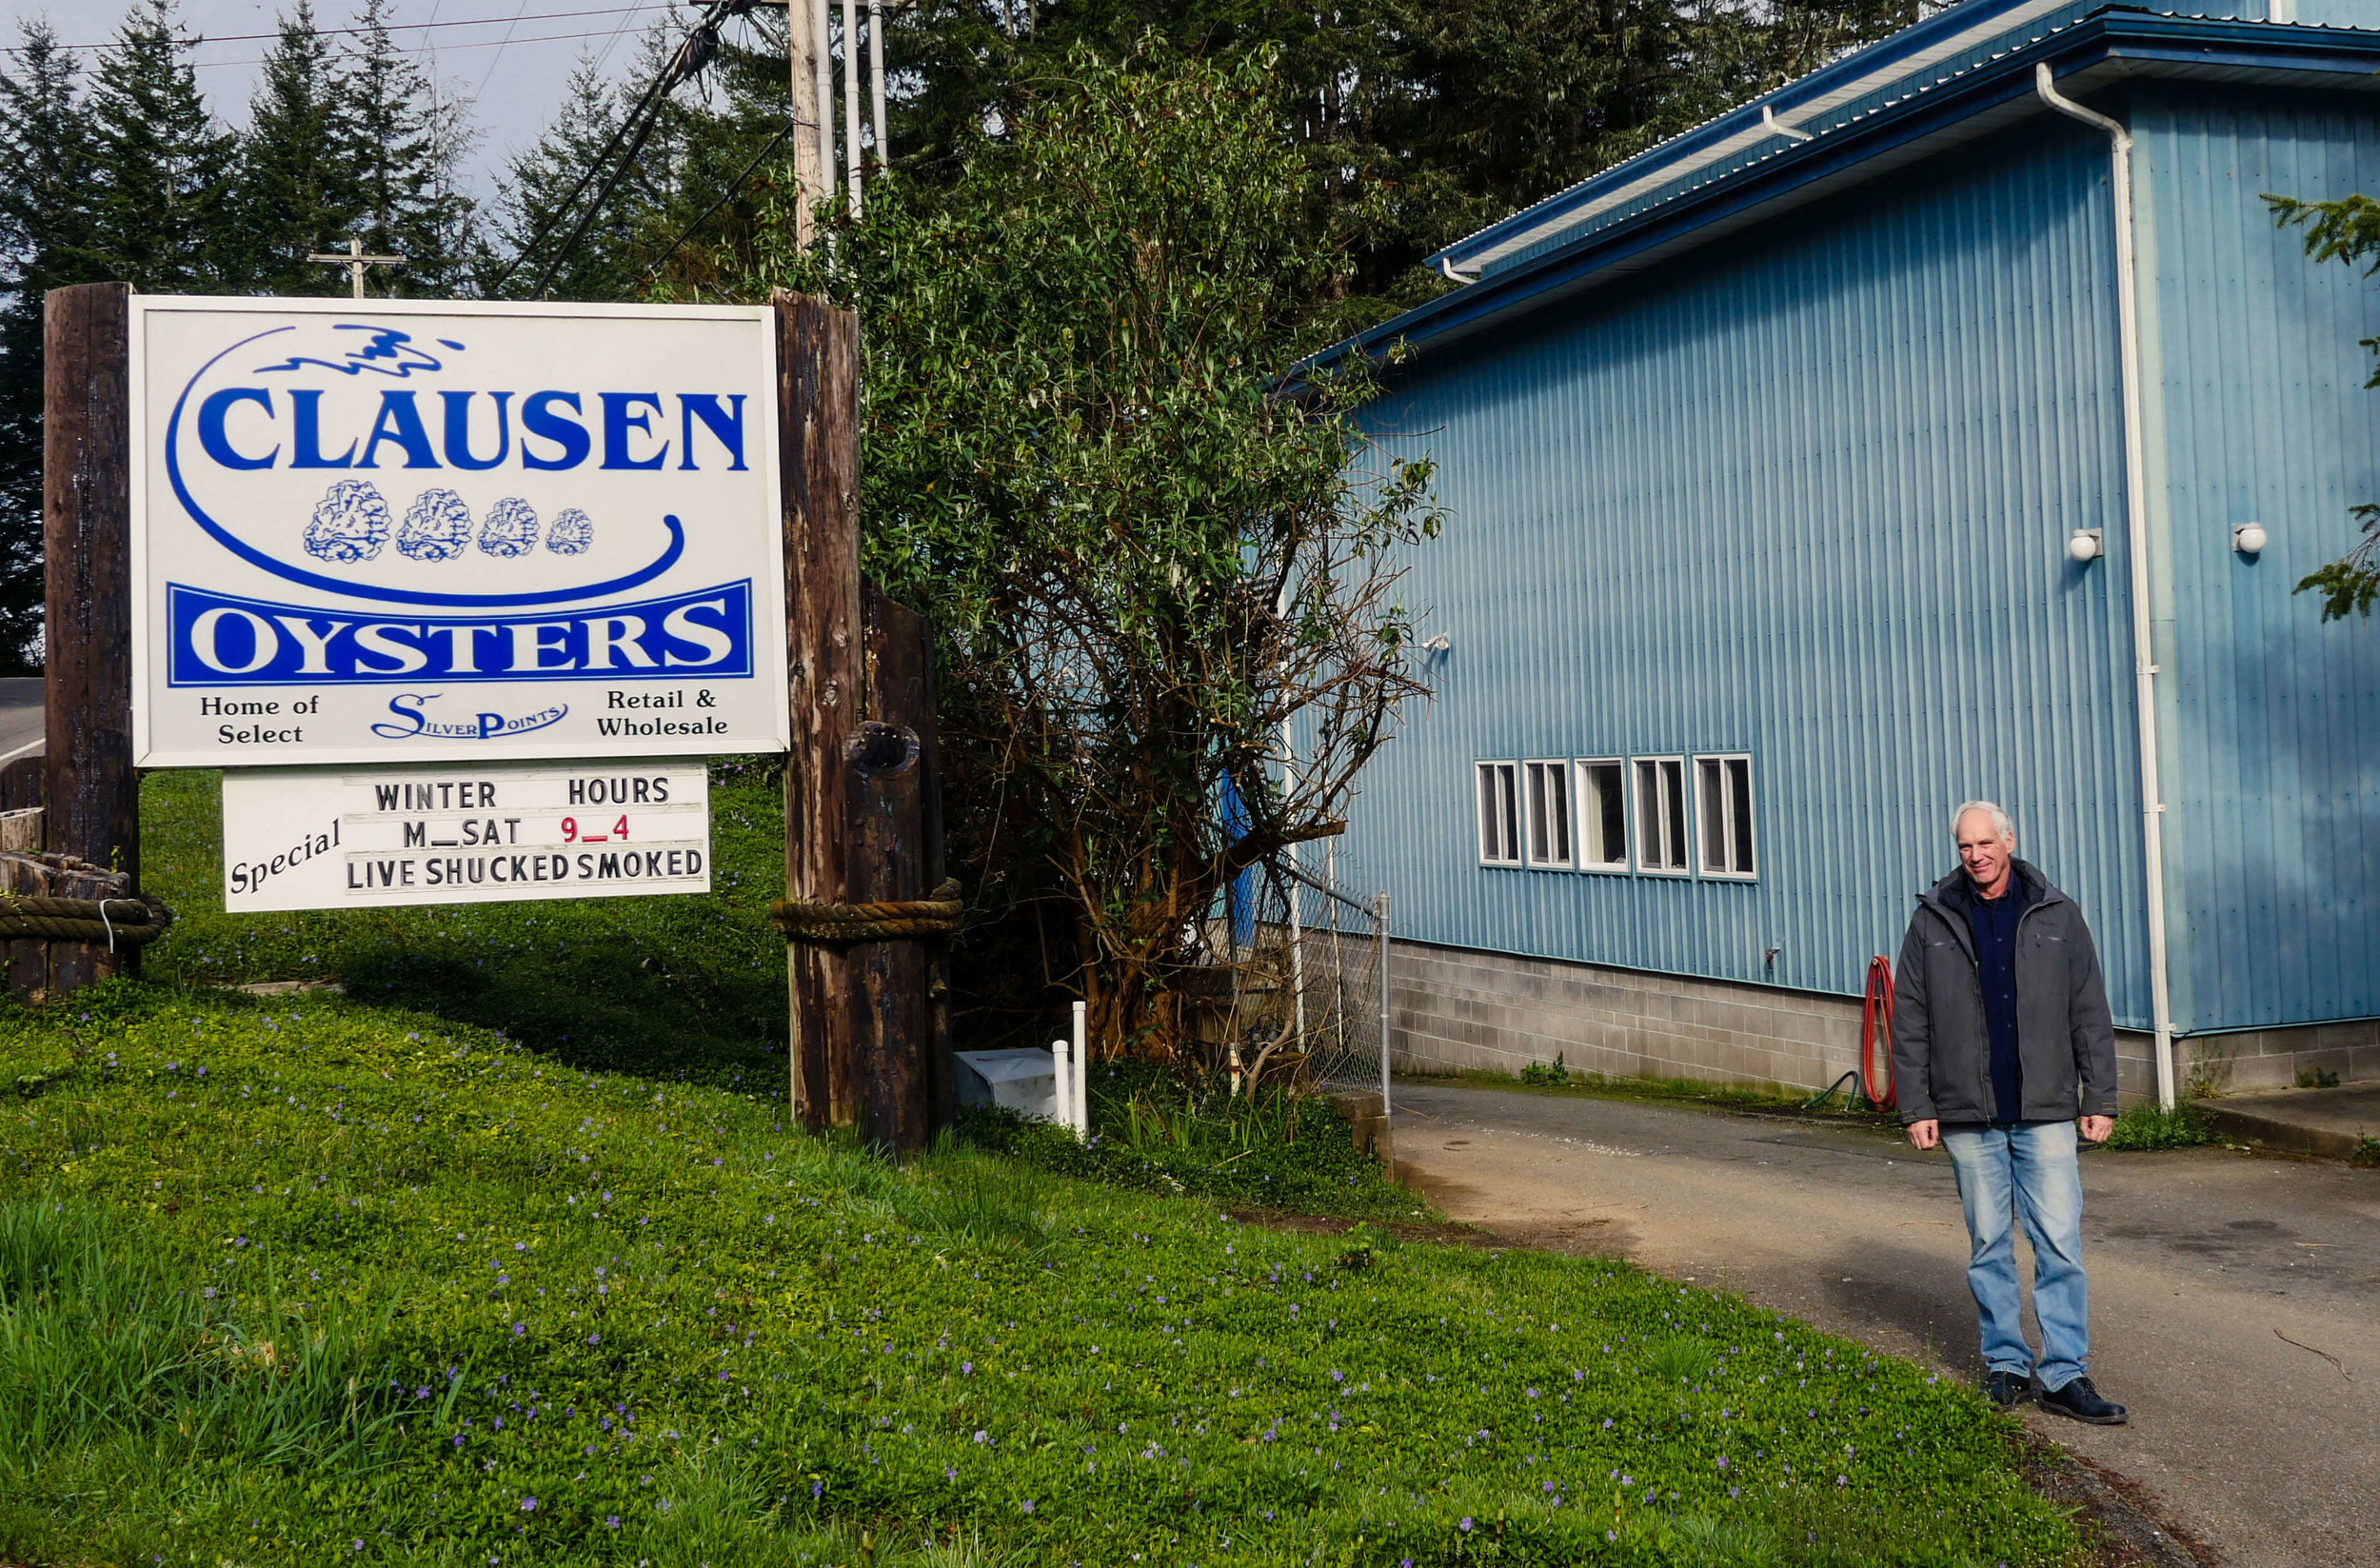 Norm Abell, one of the 4 owners of Clausen's Oysters